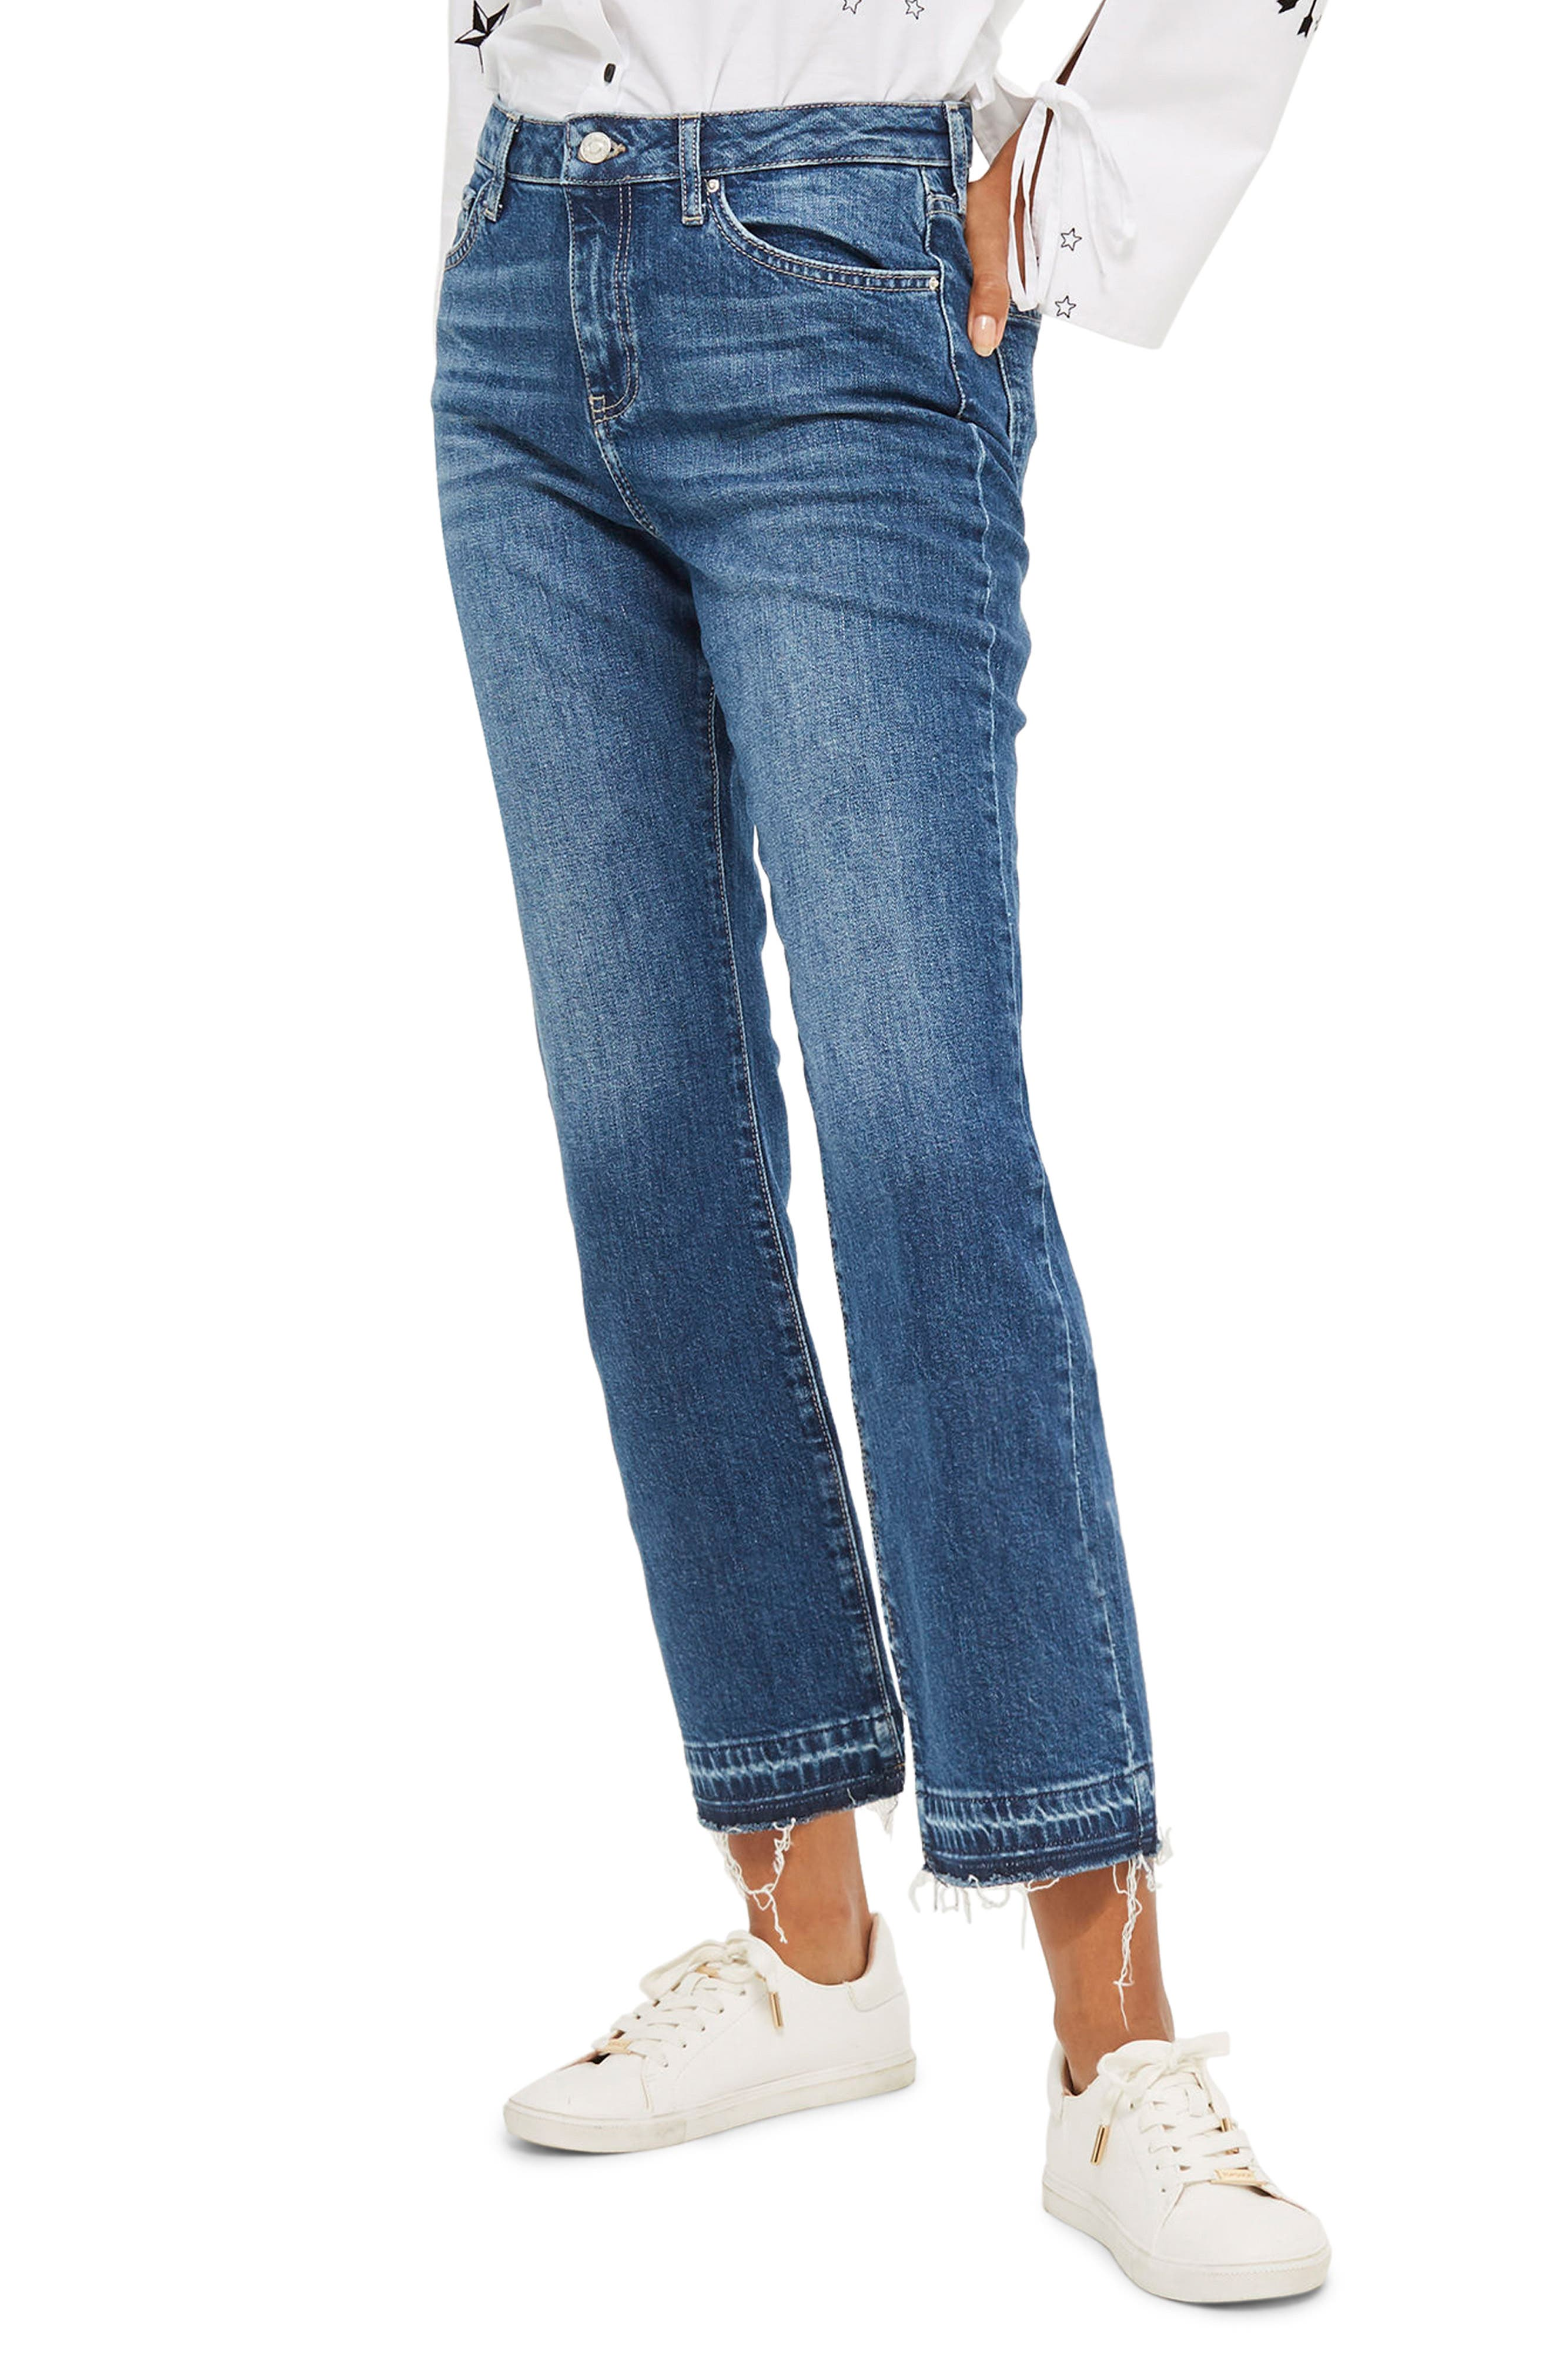 Alternate Image 1 Selected - Topshop Dree Released Hem Flare Jeans